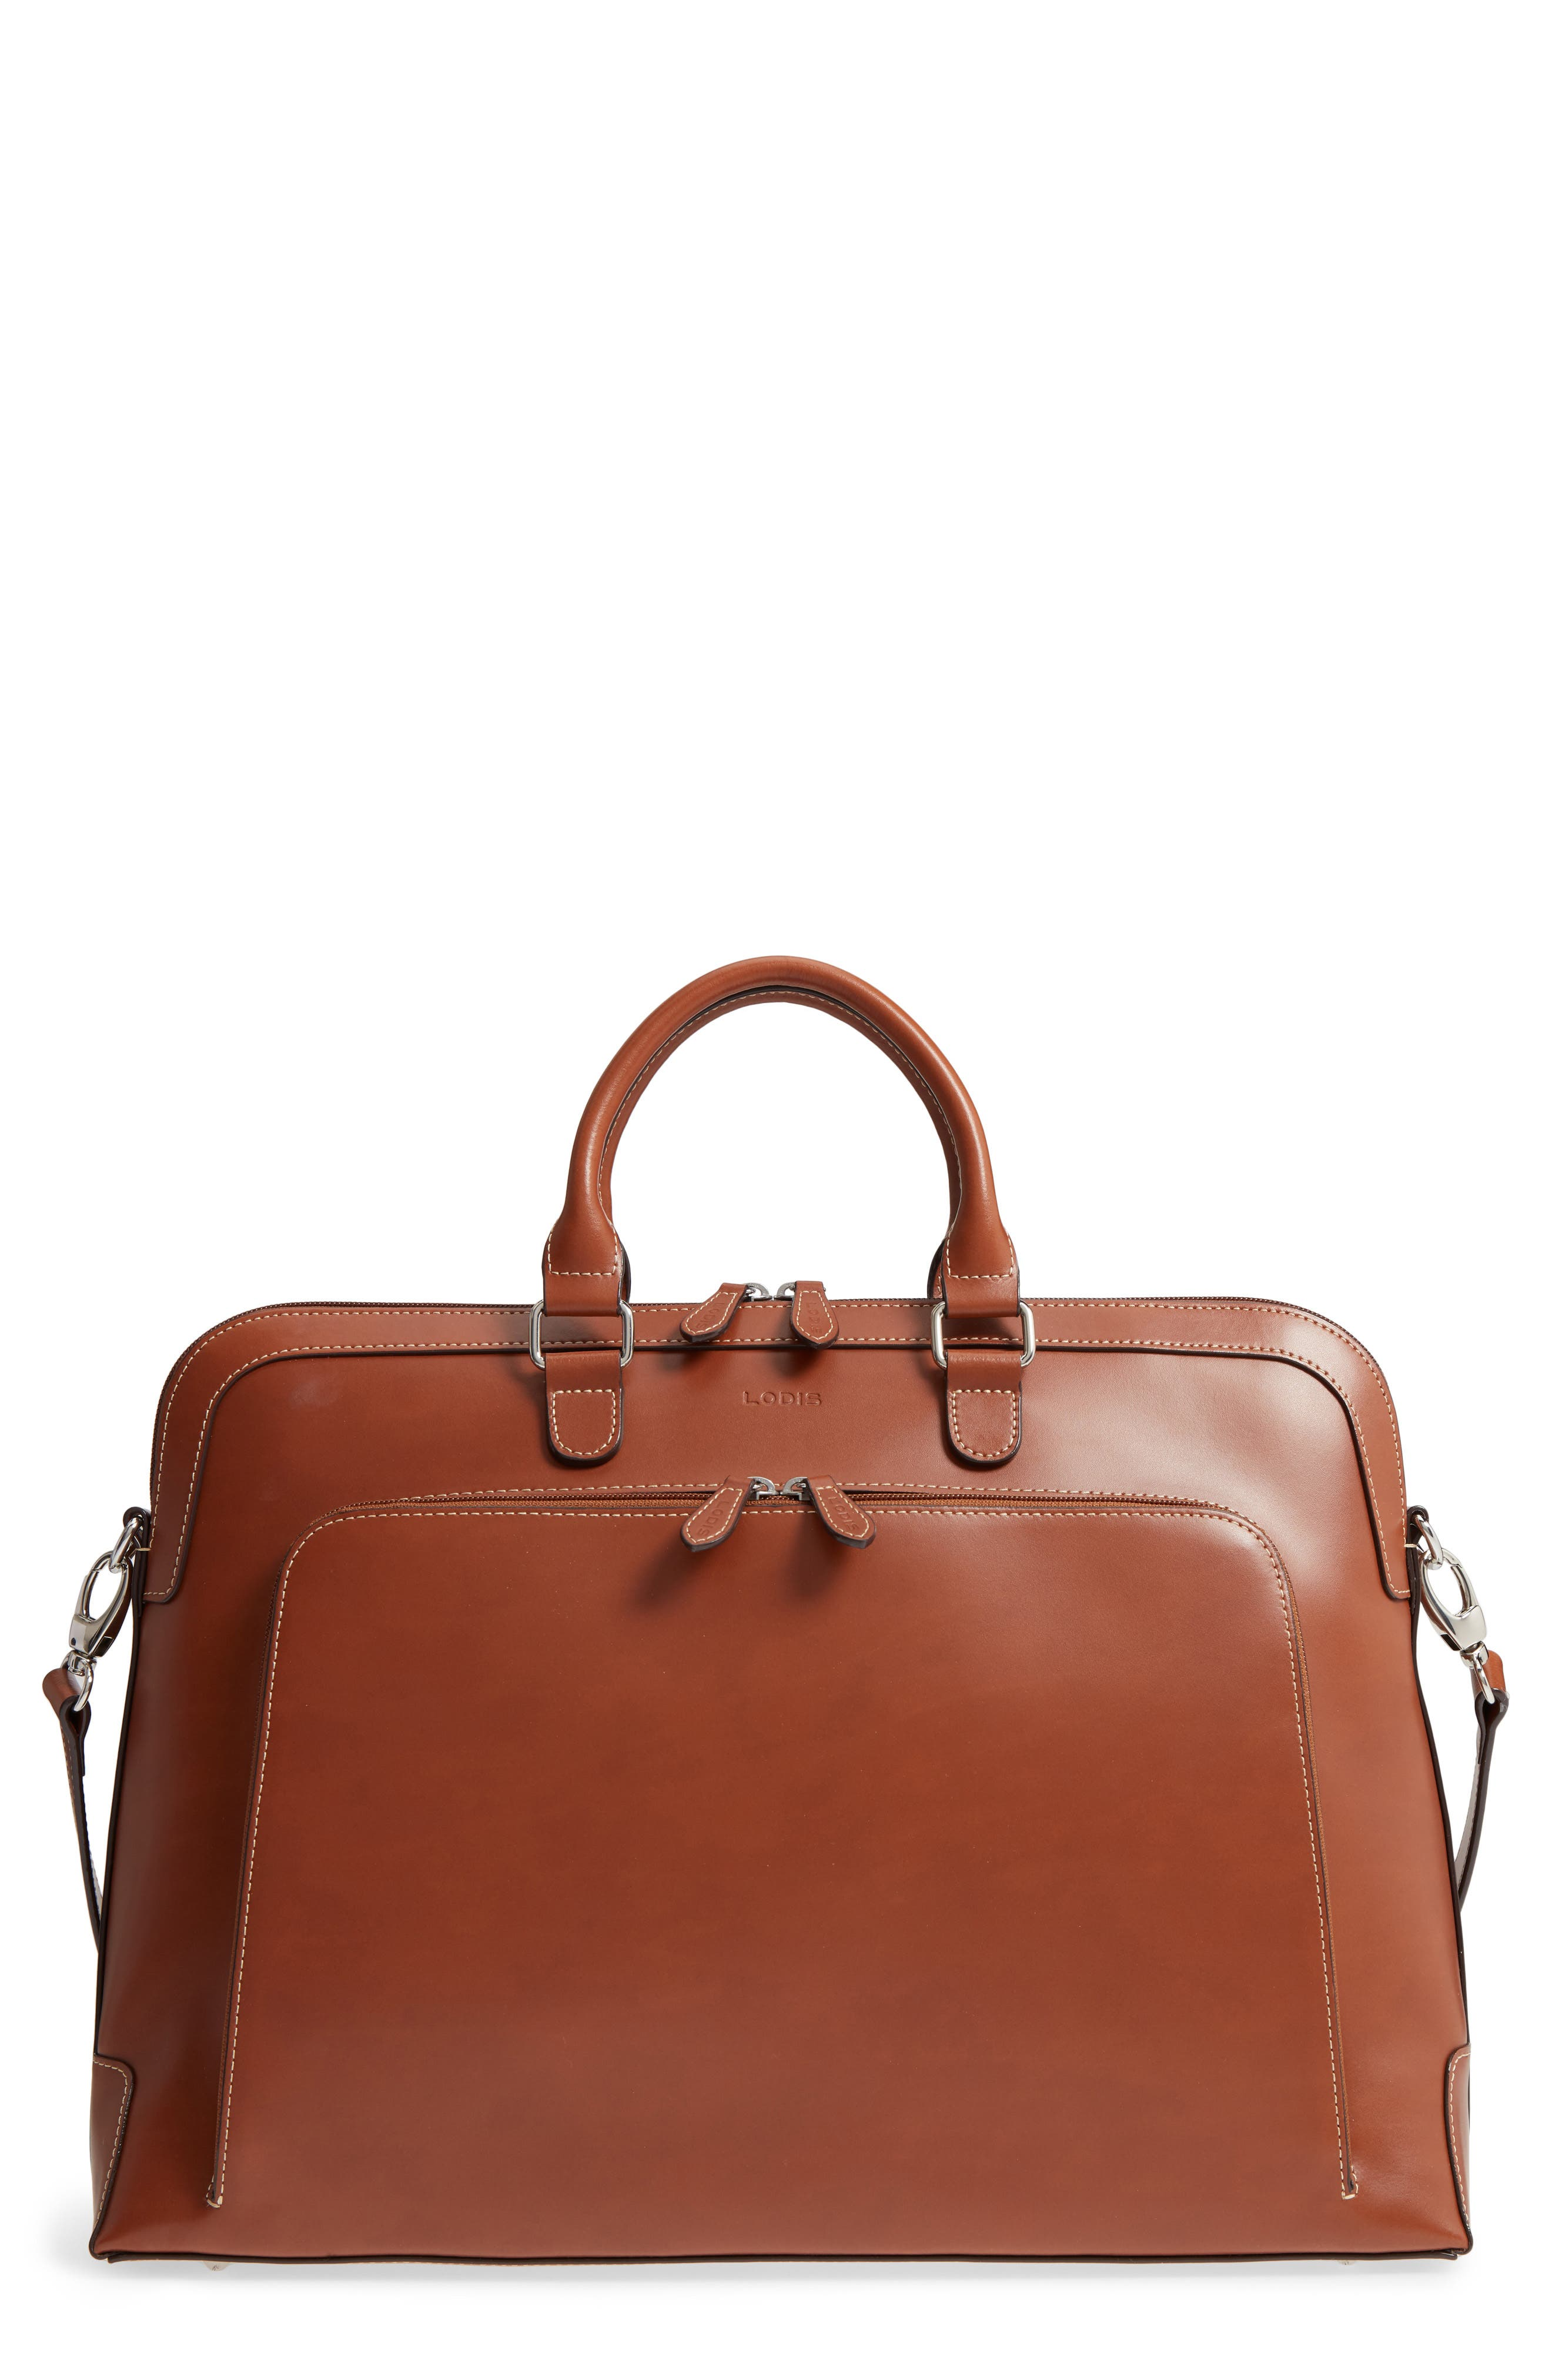 Audrey Under Lock & Key - Brera RFID Leather Briefcase,                             Main thumbnail 1, color,                             Sequoia/ Papaya